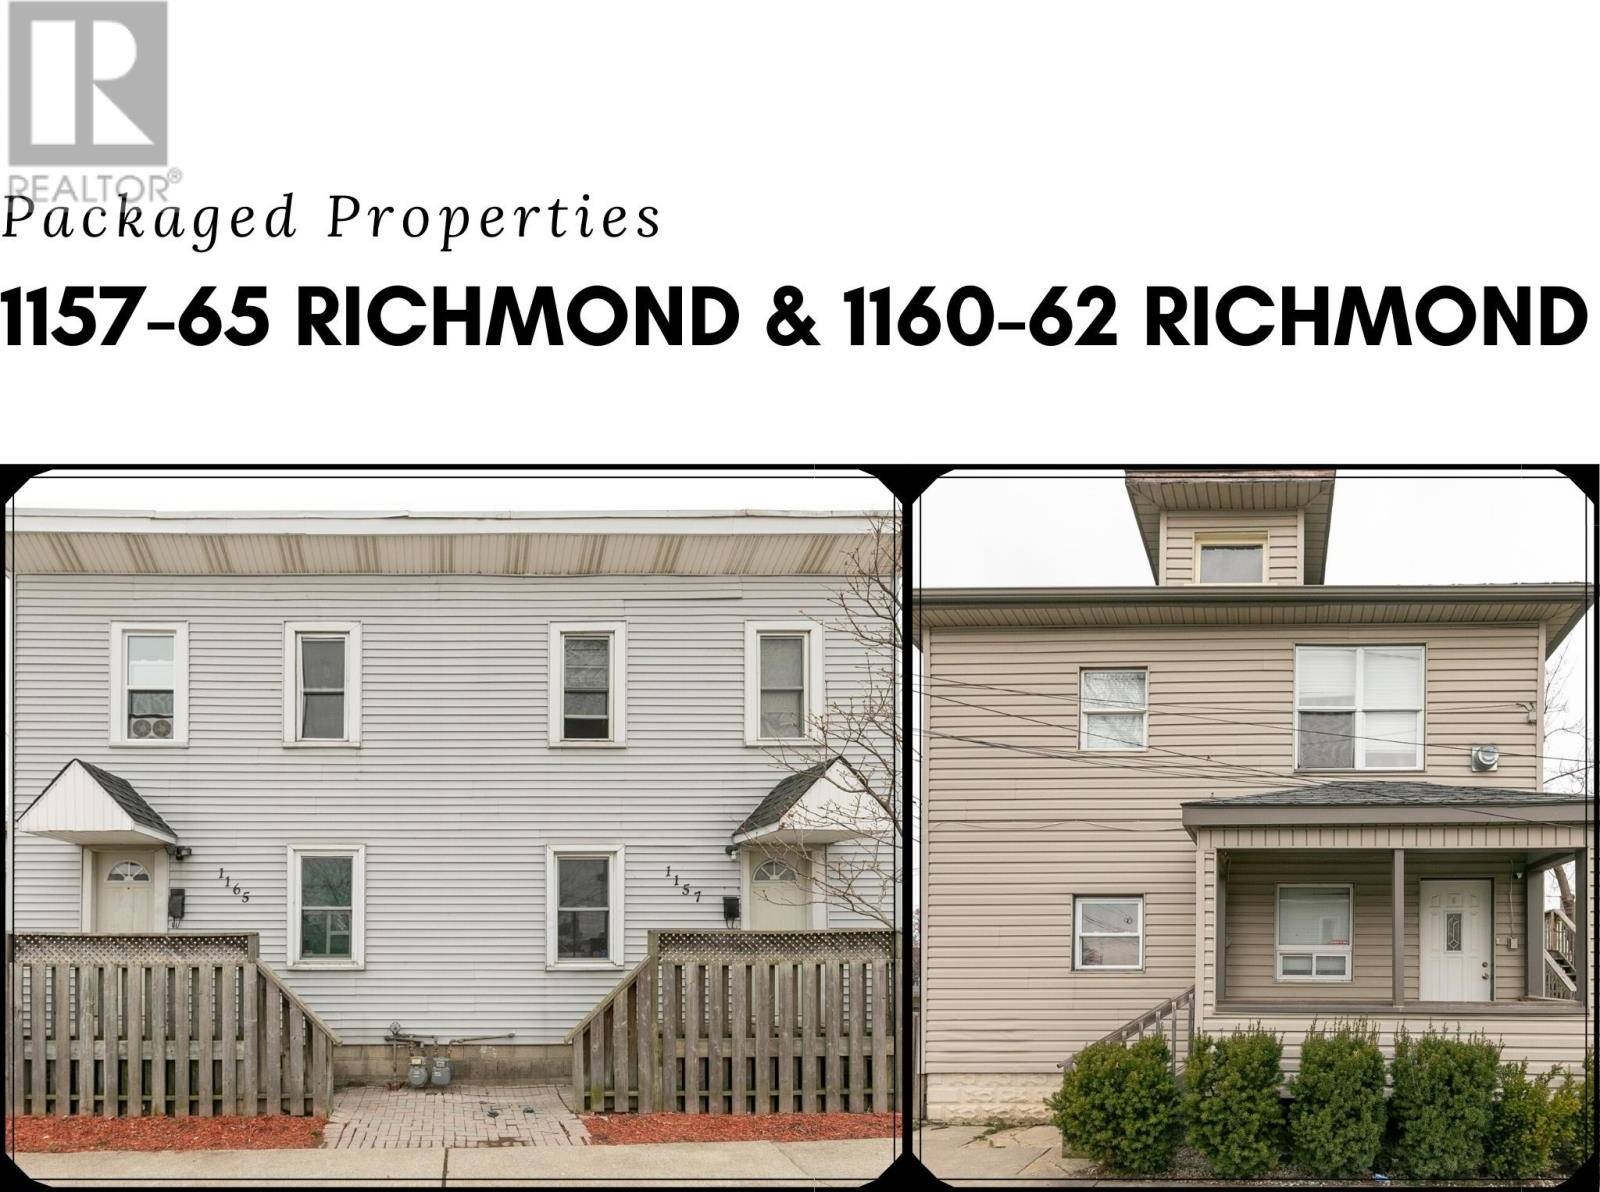 Townhouse for sale at 1160 Richmond & 1157-65 Richmond  Windsor Ontario - MLS: 20003809